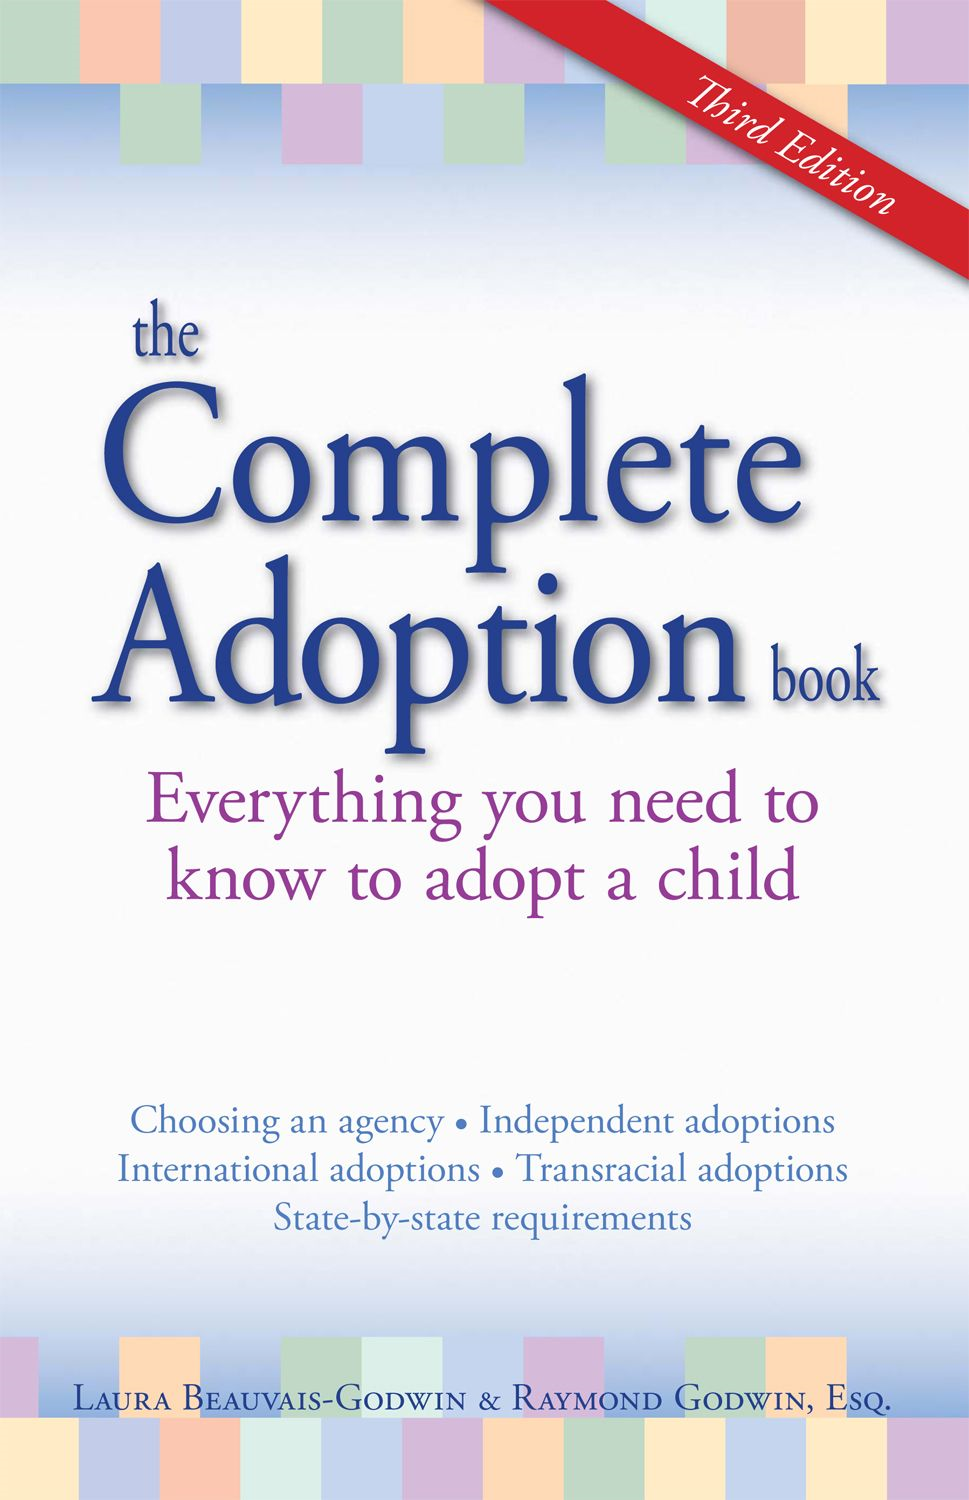 The Complete Adoption Book: Everything You Need to Know to Adopt a Child